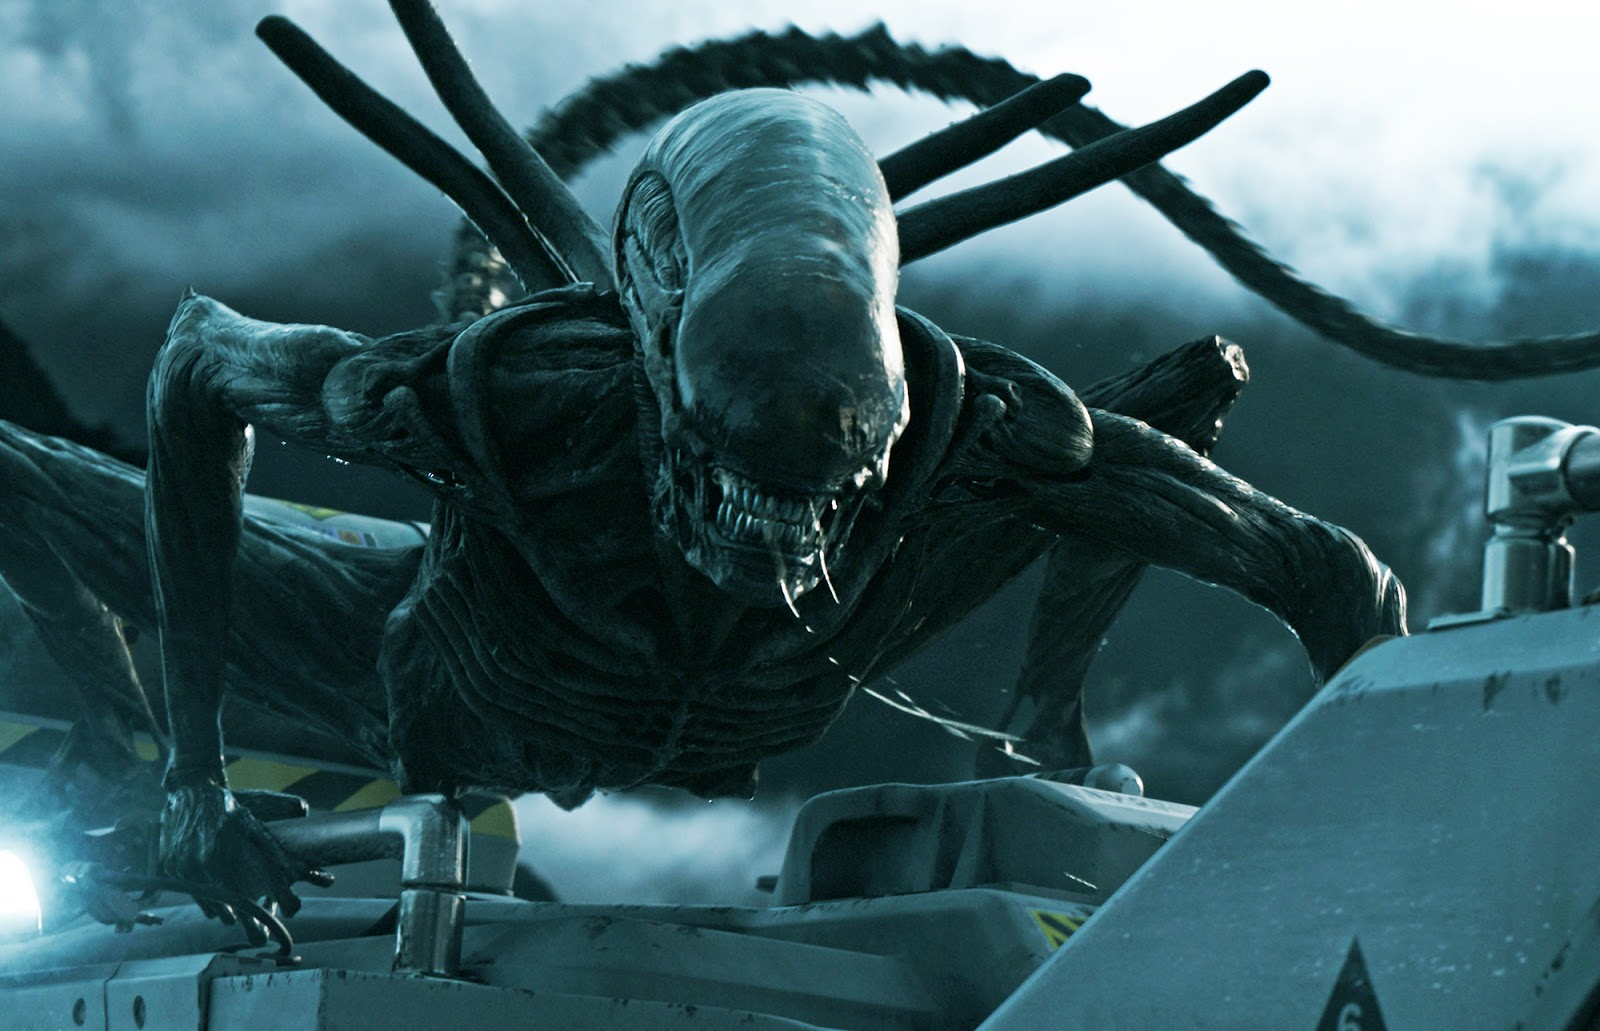 Ridley Scott keeps thinking about making more Alien movies